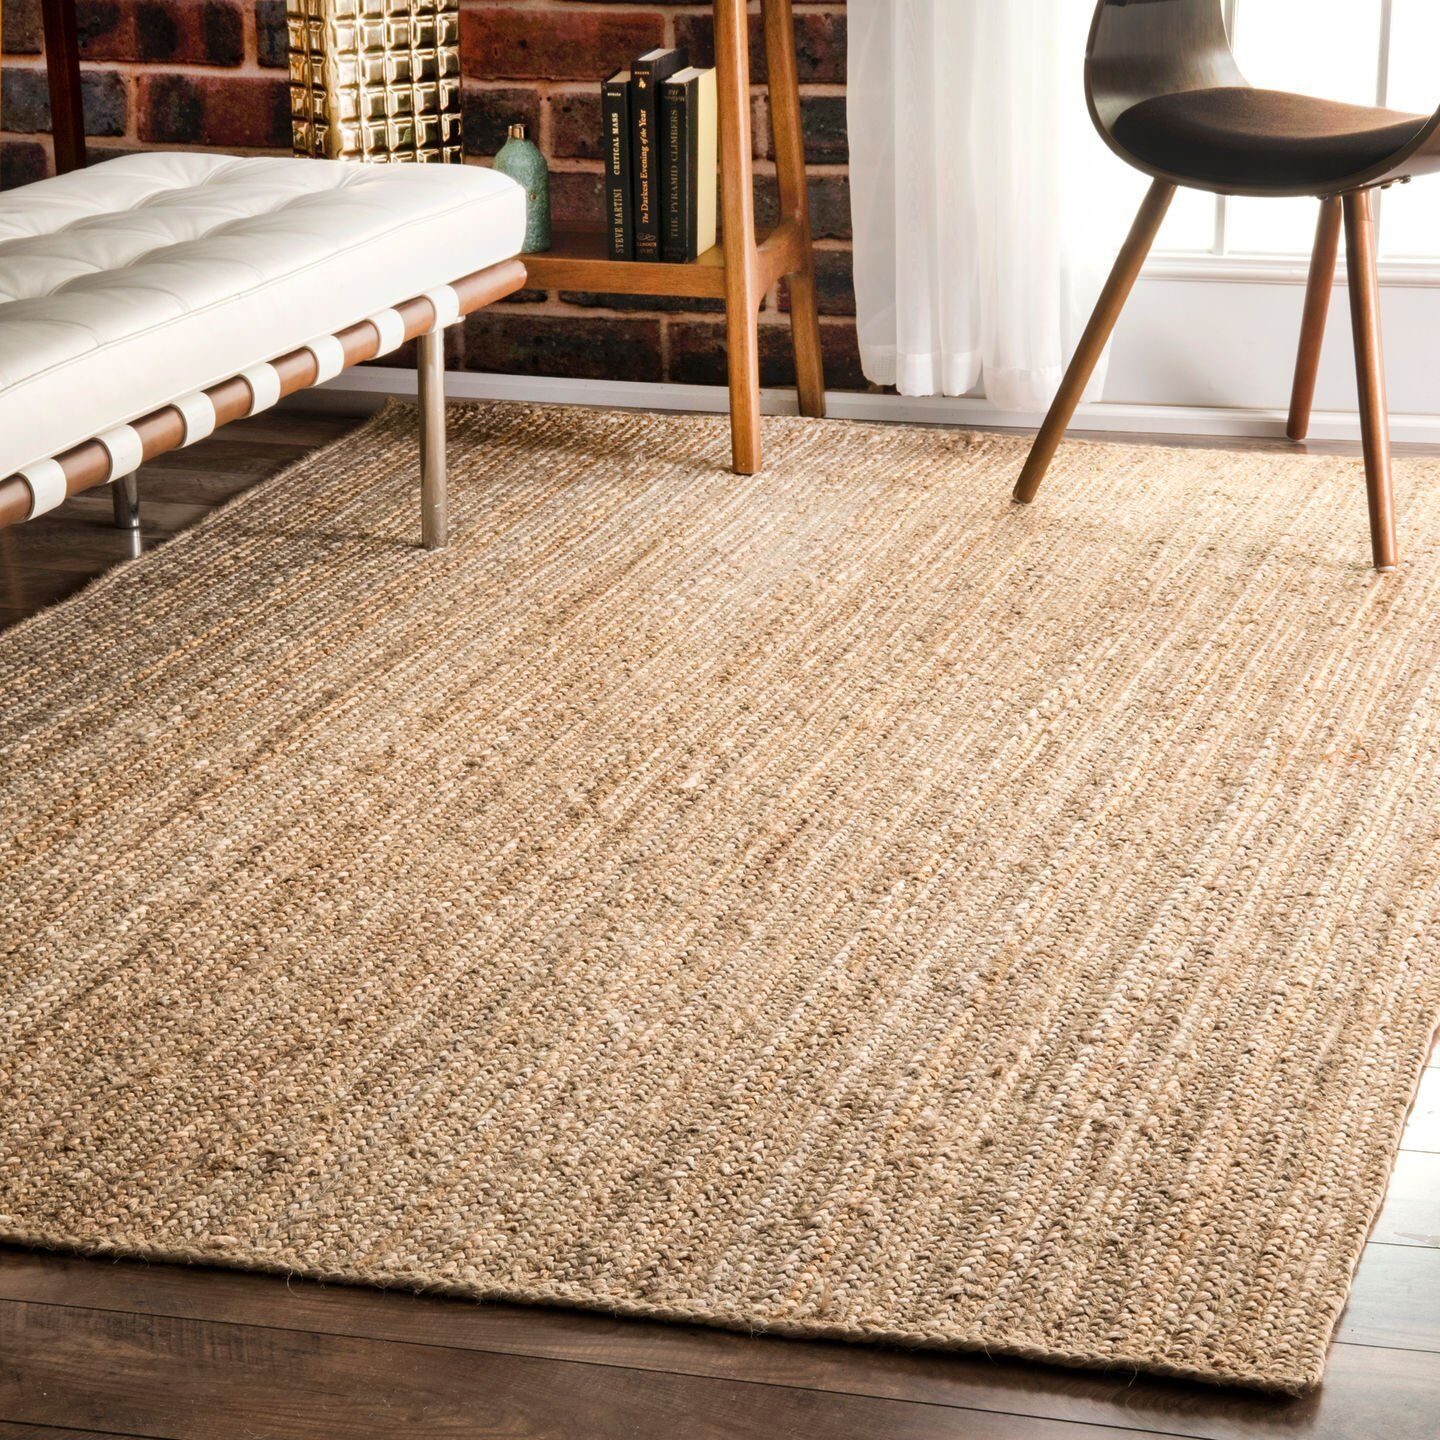 Braided Rectangle Woven Indian Jute Rug For Home Decoration